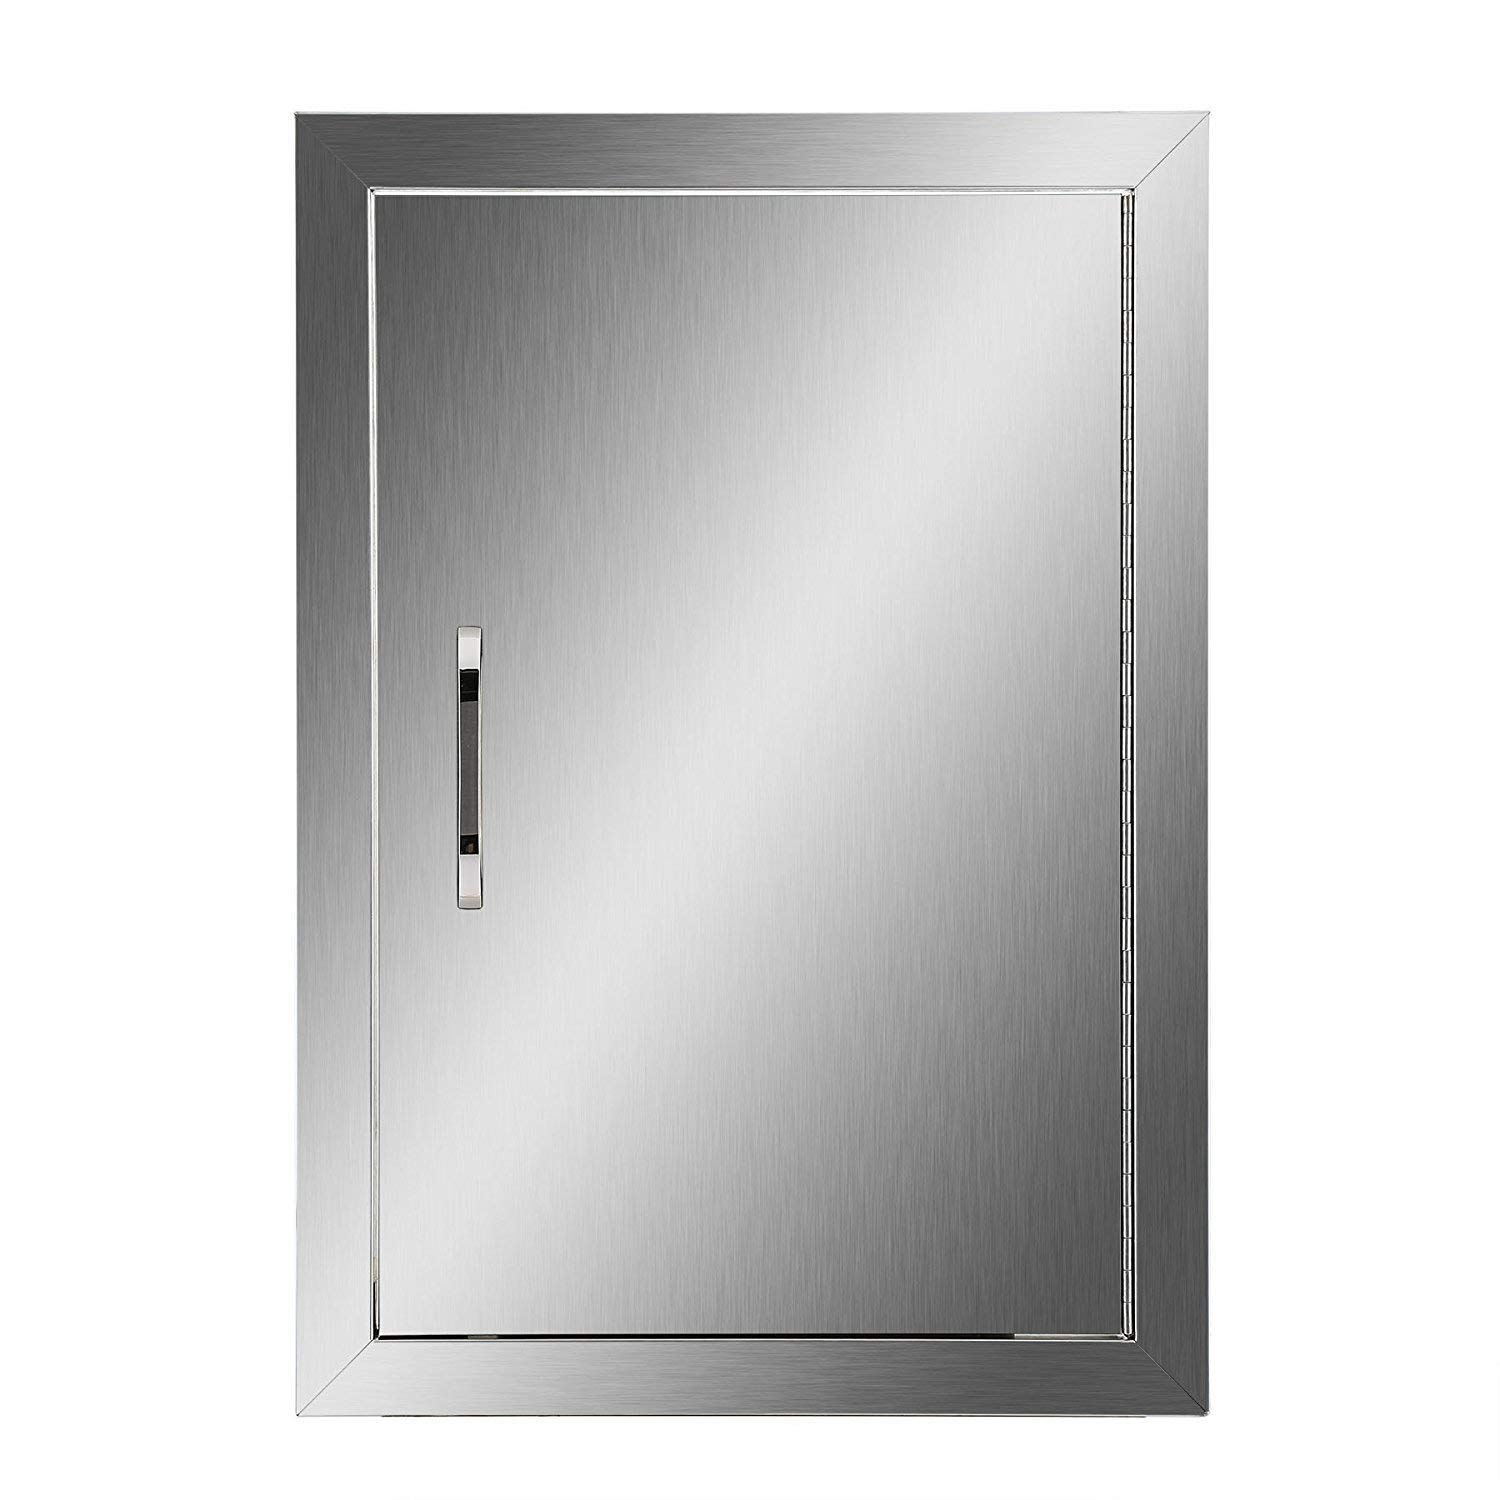 Happybuy BBQ Access Door Double Wall Construction Cutout 14W x 20H In. BBQ Island/Outdoor Kitchen Access Doors 304 Grade Brushed Stainless Steel Heavy Duty